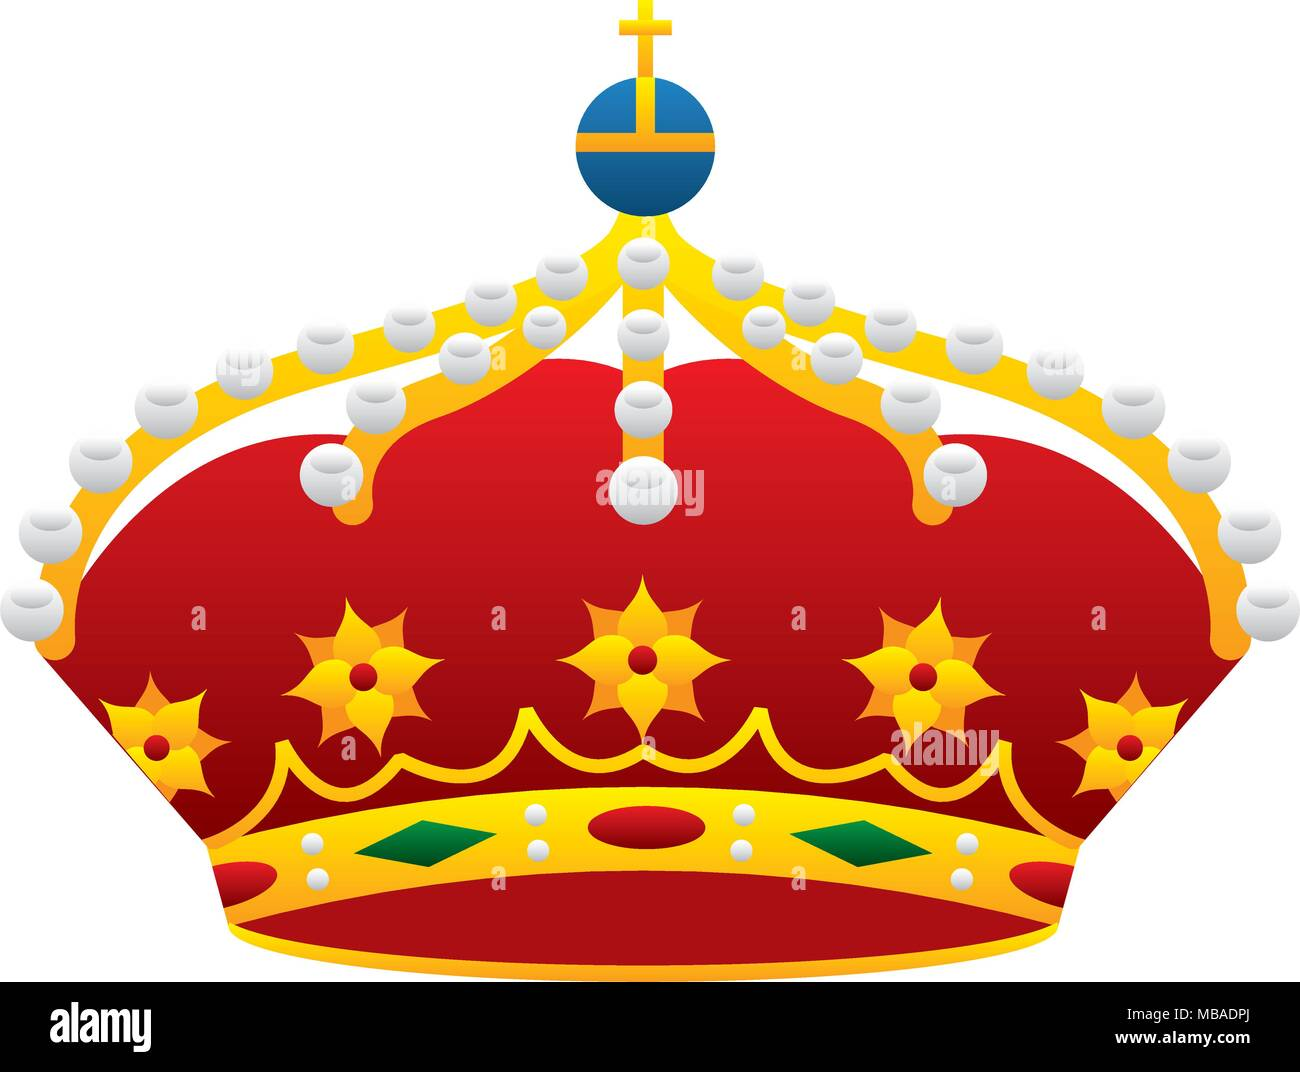 crown monarchy king icon - Stock Vector